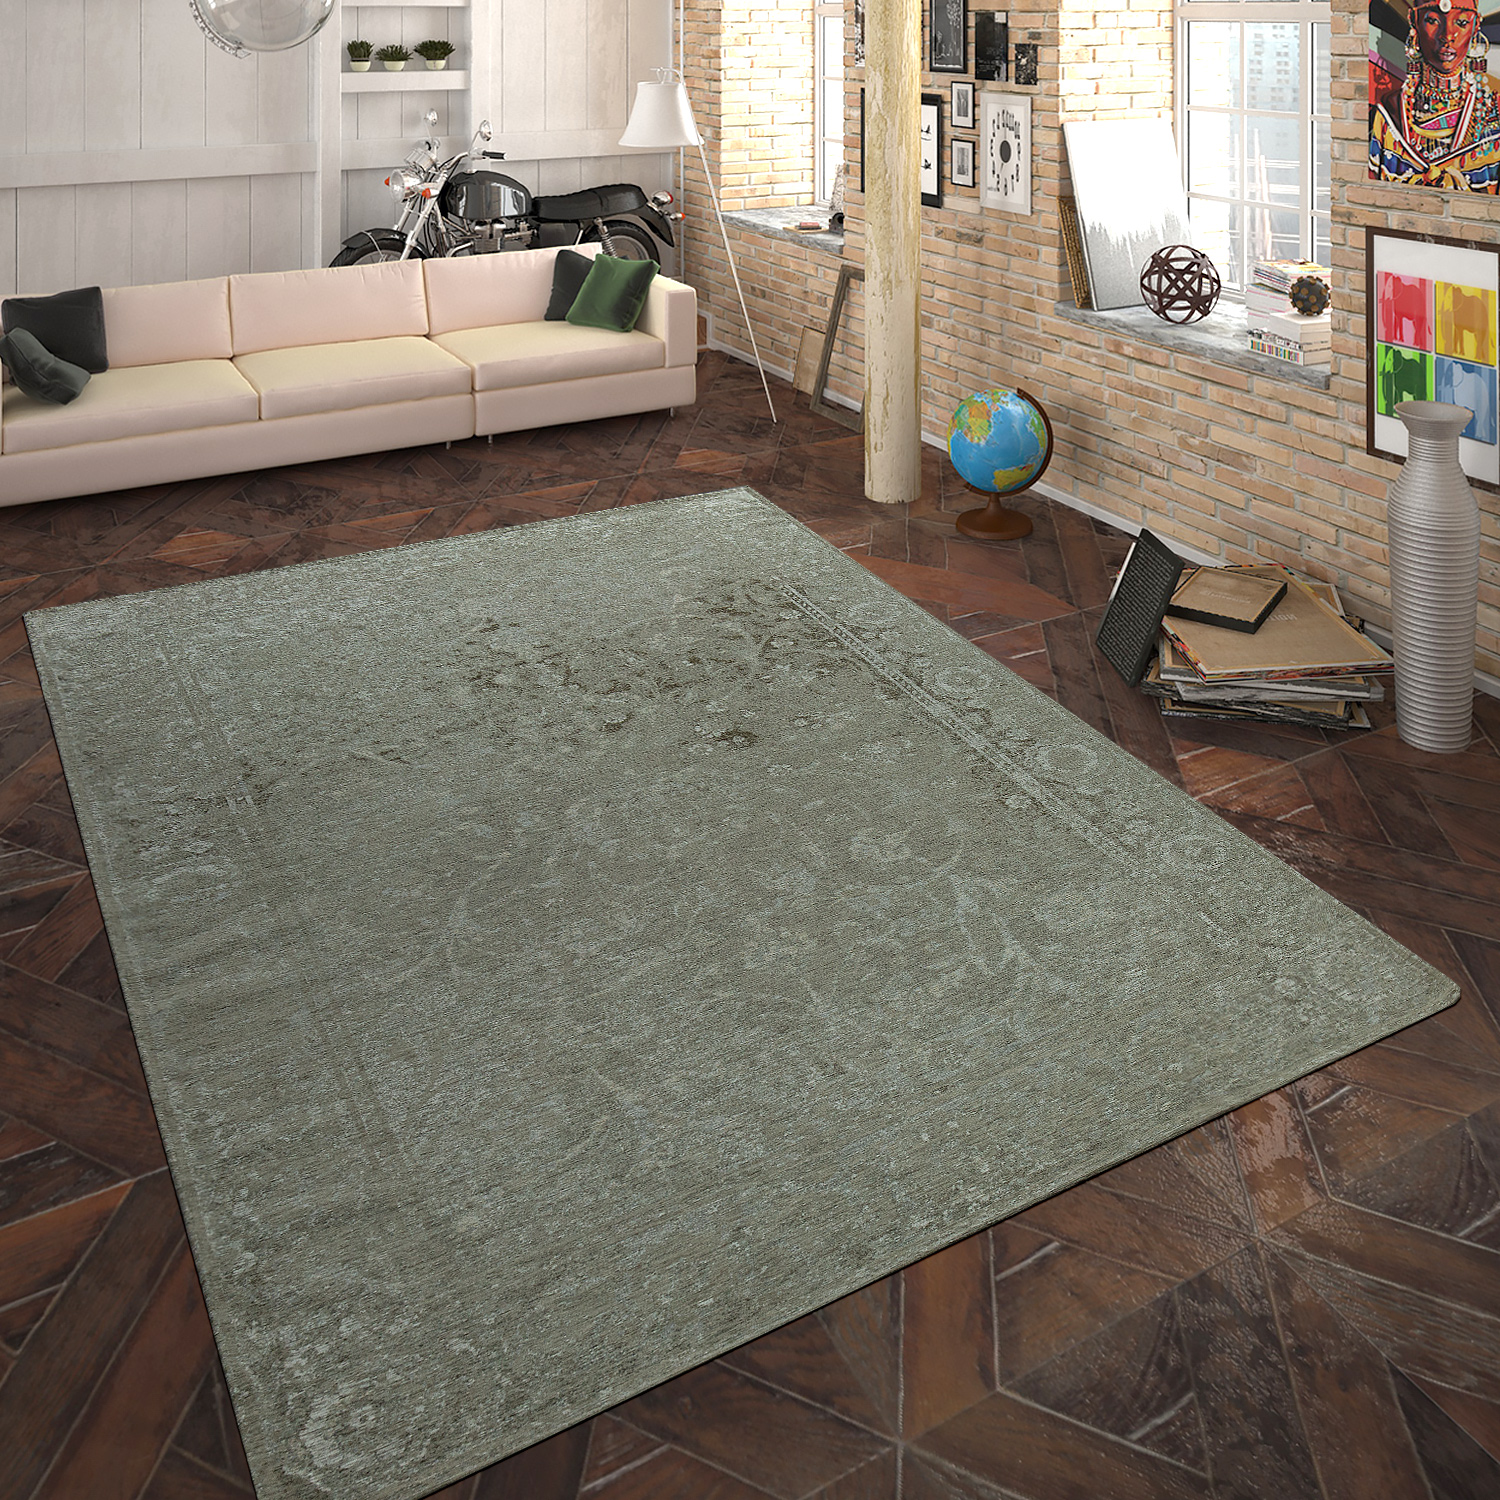 Rug Flat Woven Vintage Look Taupe